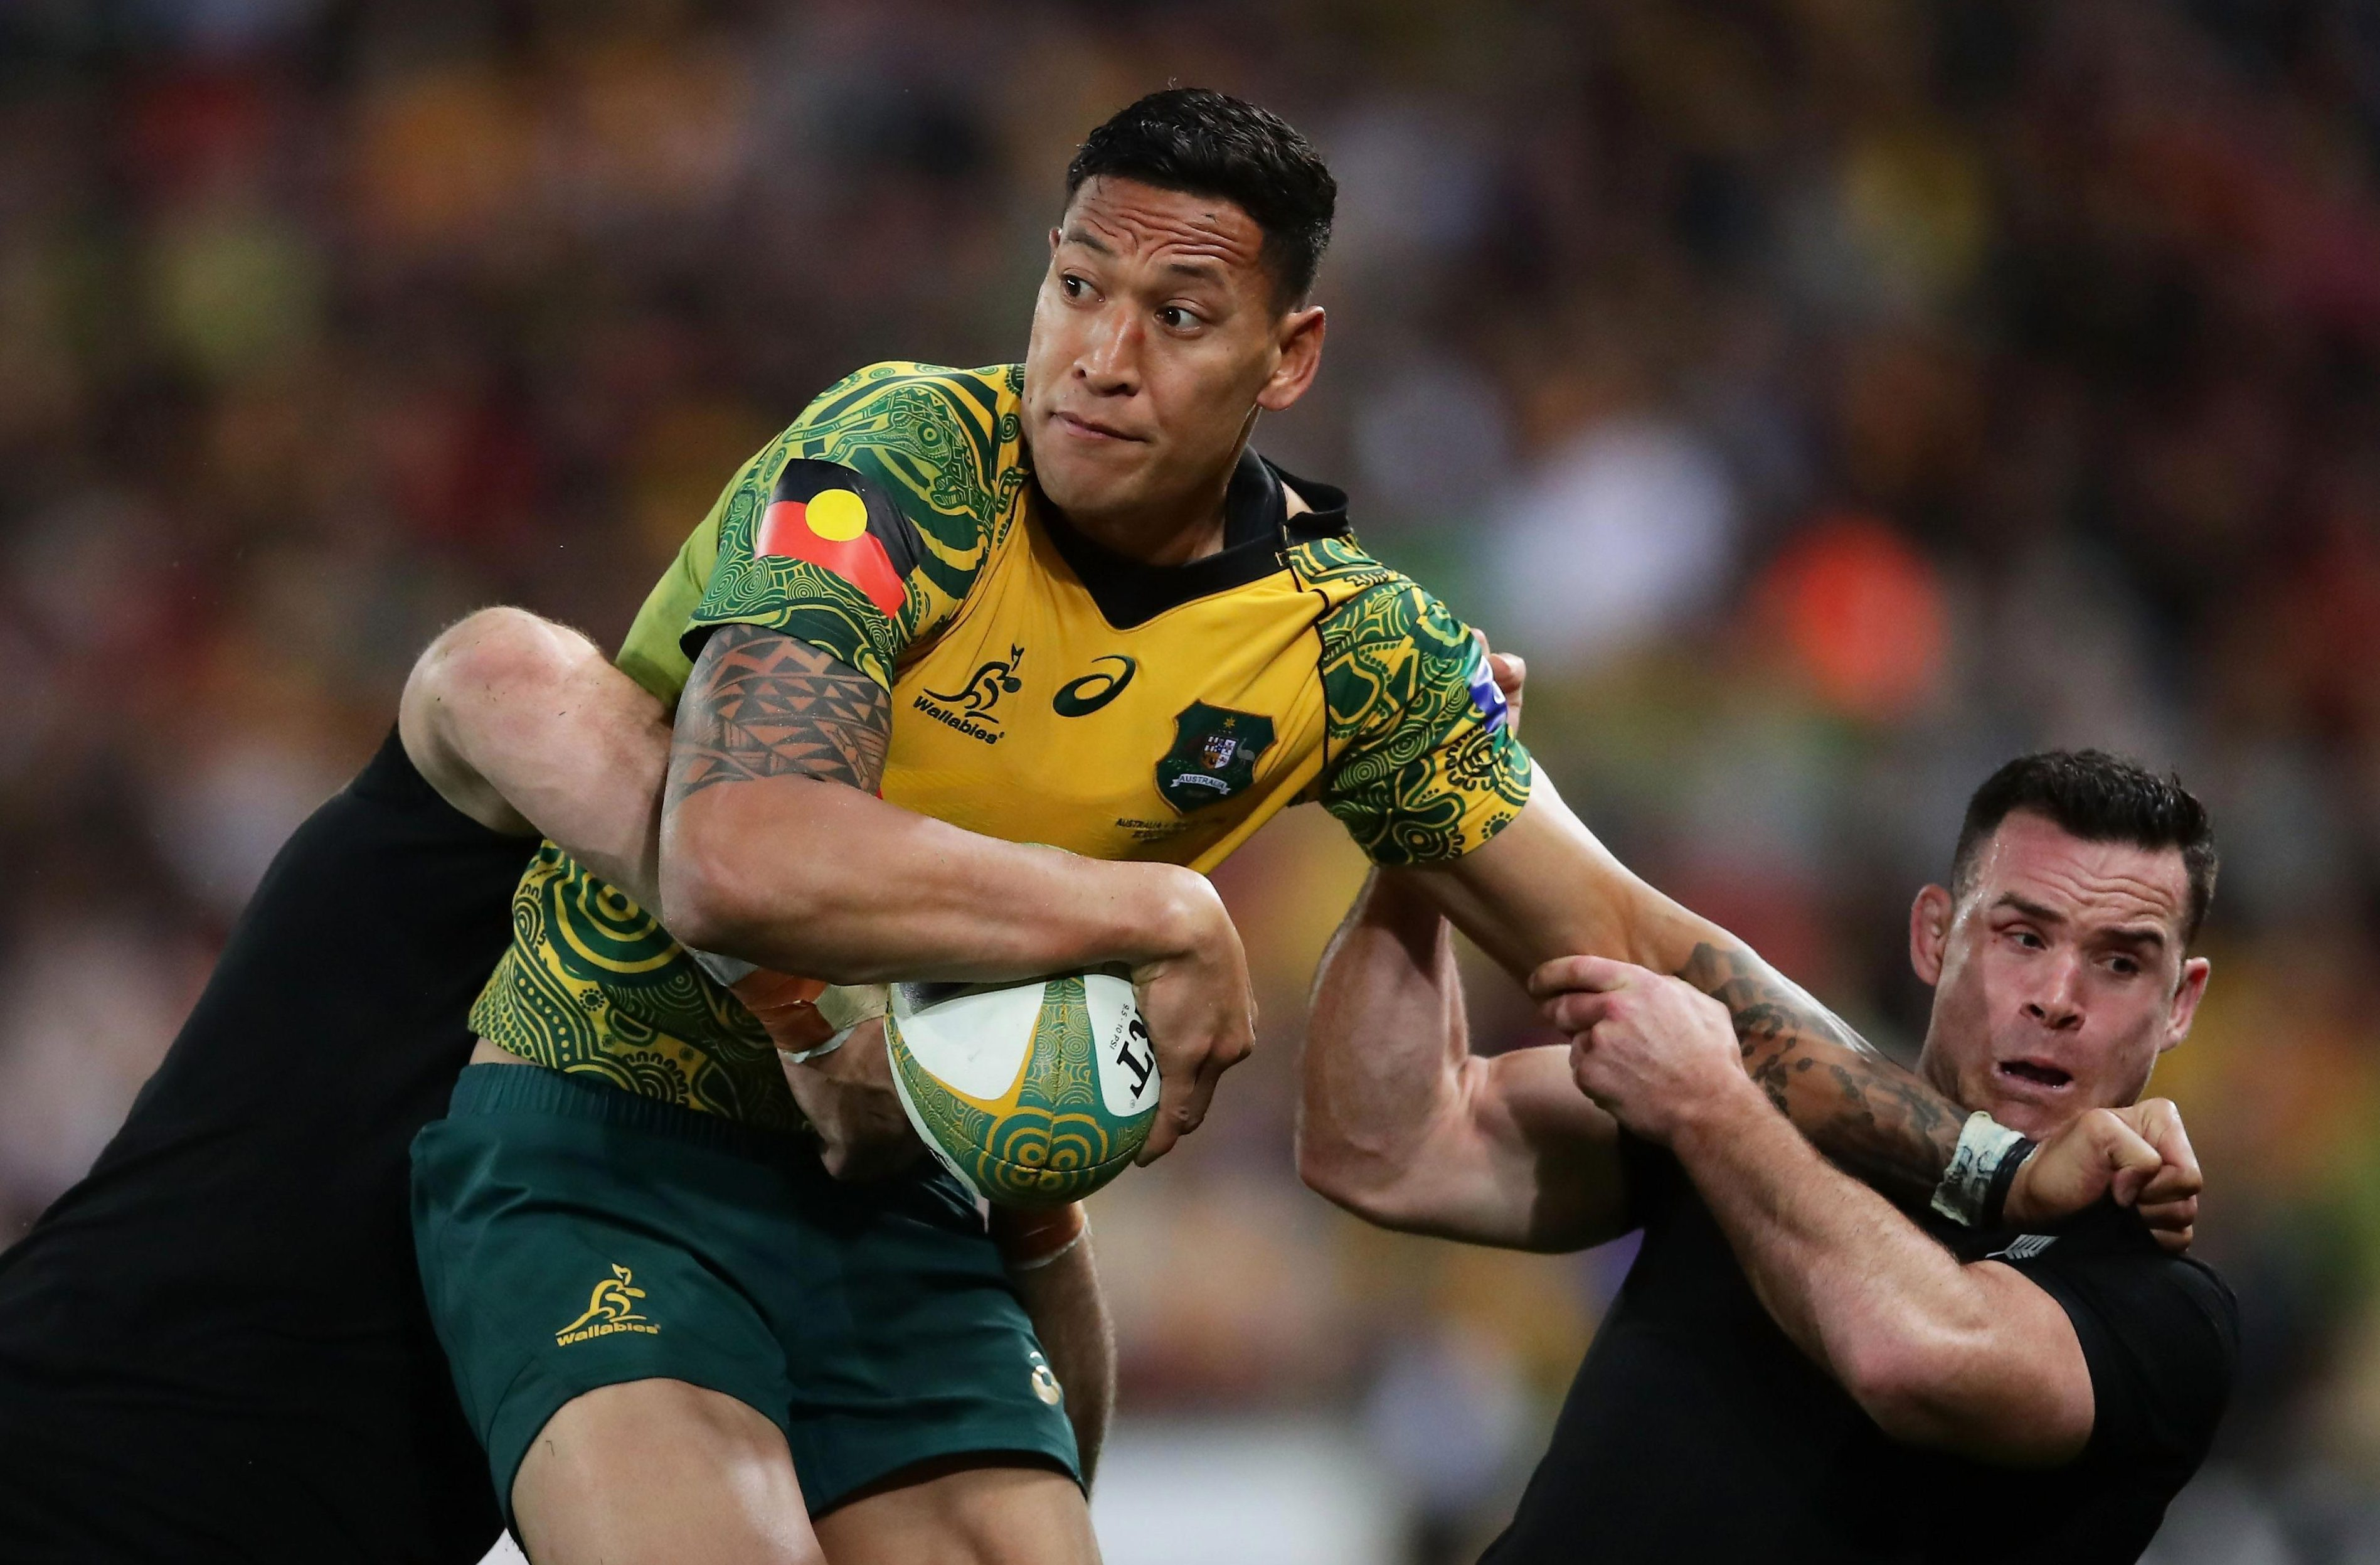 Israel Folau has sparked outrage with his comments on homosexuals